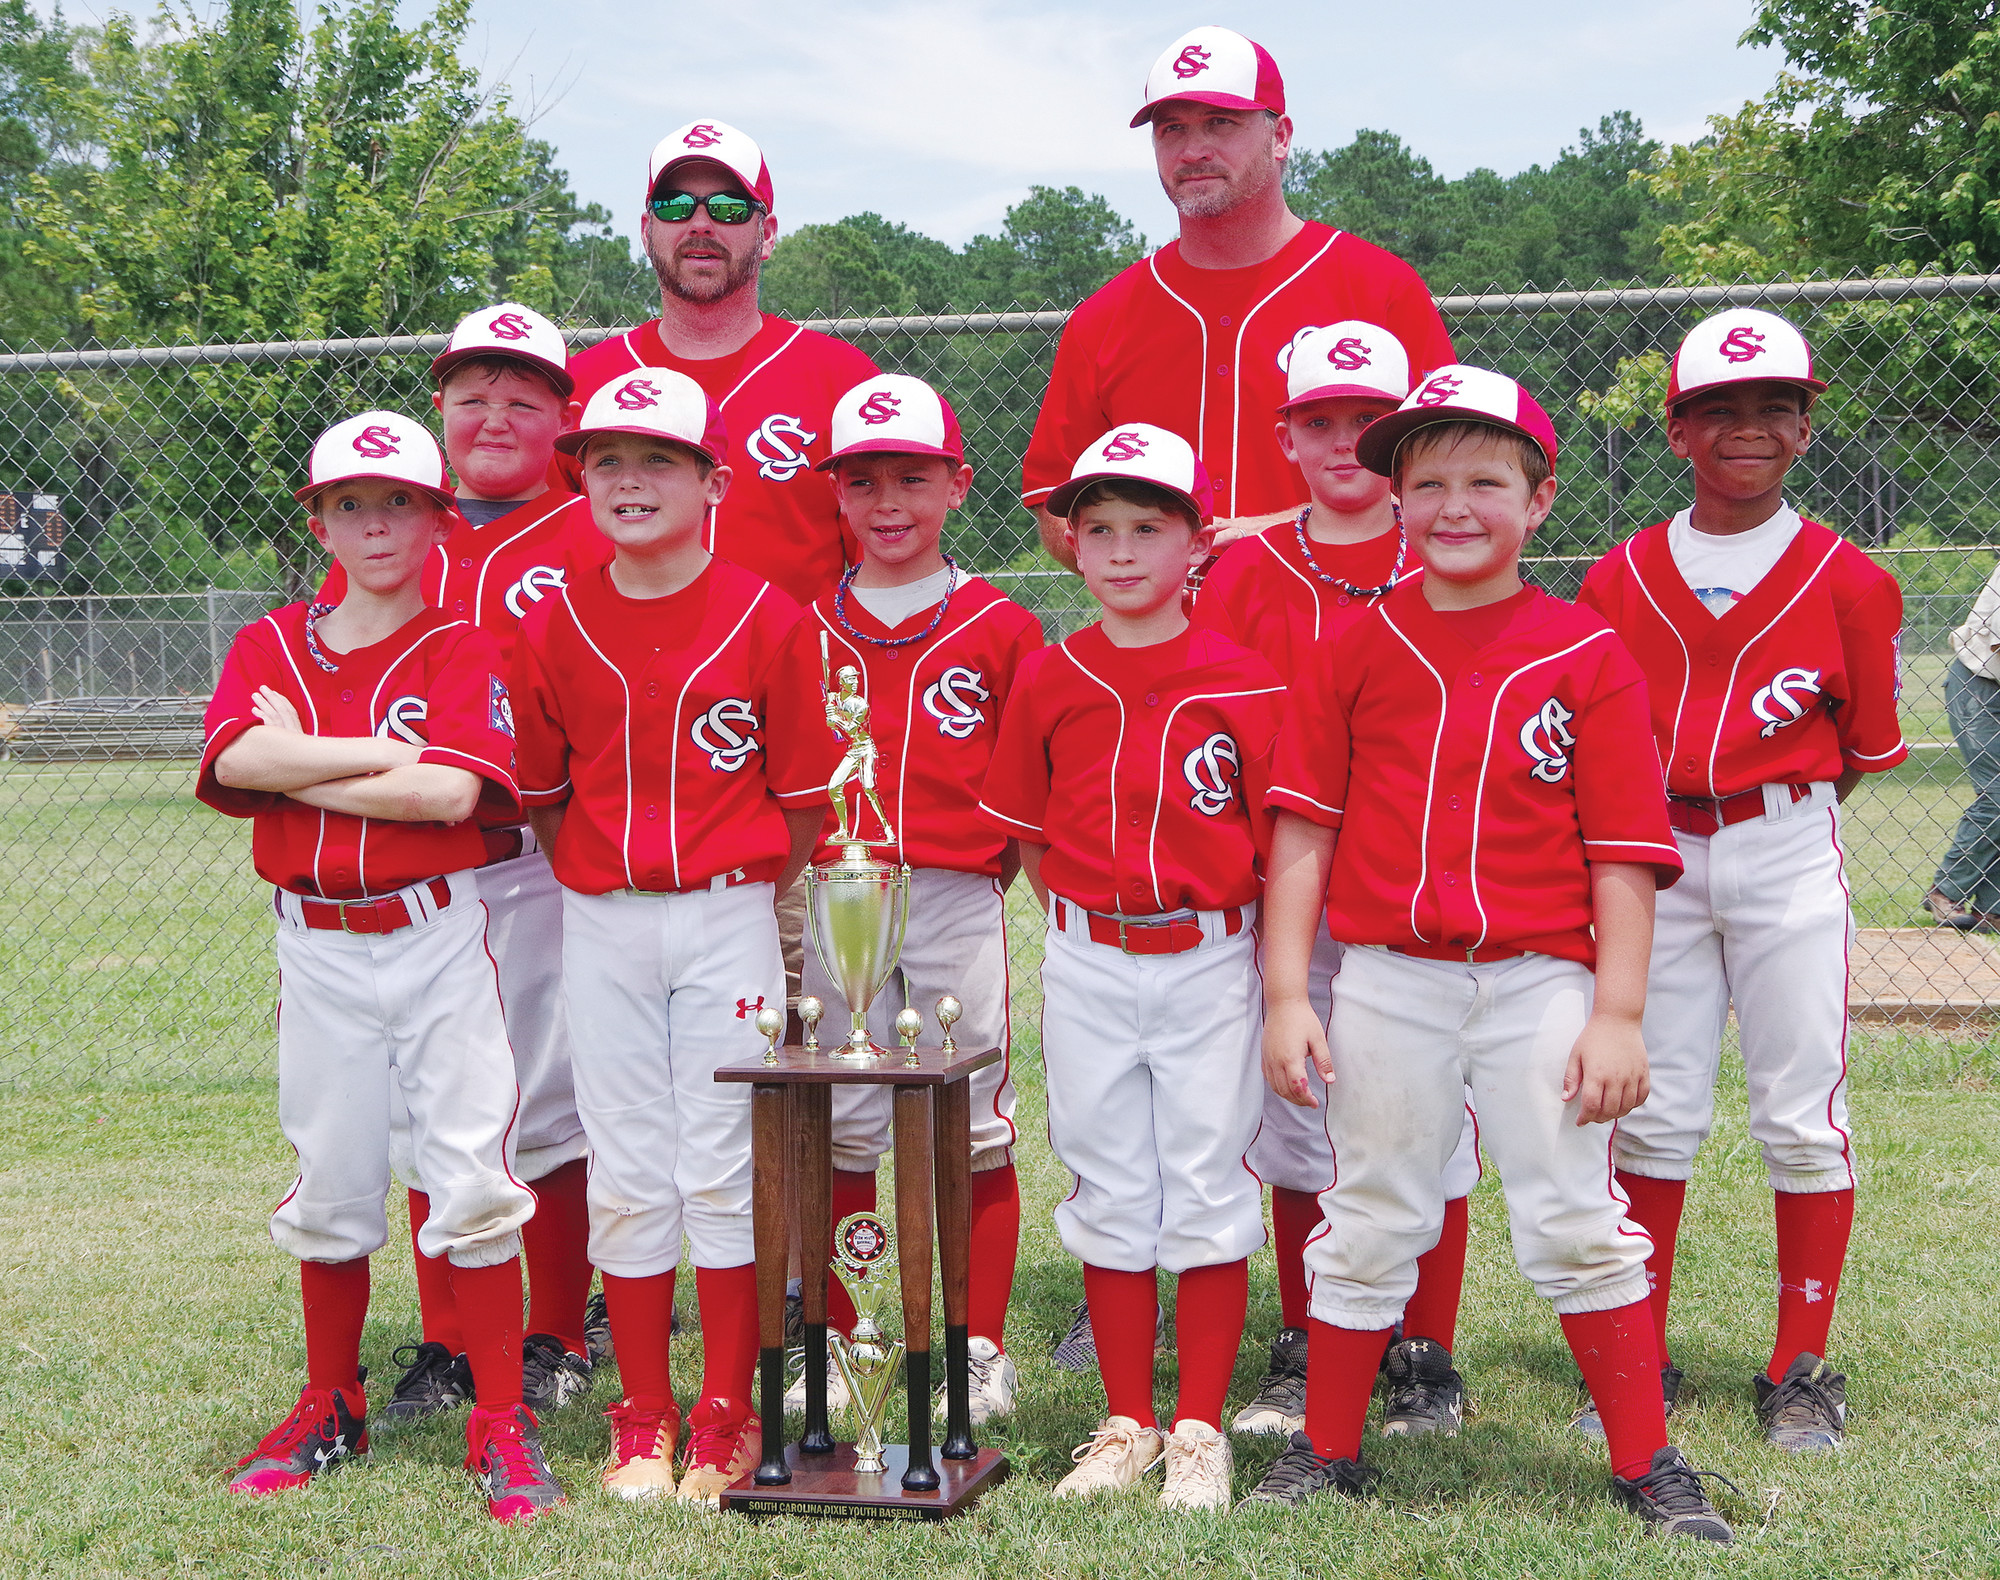 PHOTO PROVIDED BY THE MORNING NEWS  The Sumter American 7-8 year-old coaches pitch all-star team  was recognized on Tuesday for sportsmanship in the state tournament in Florence. Sumter American was eliminated by eventual state champion Midlands.